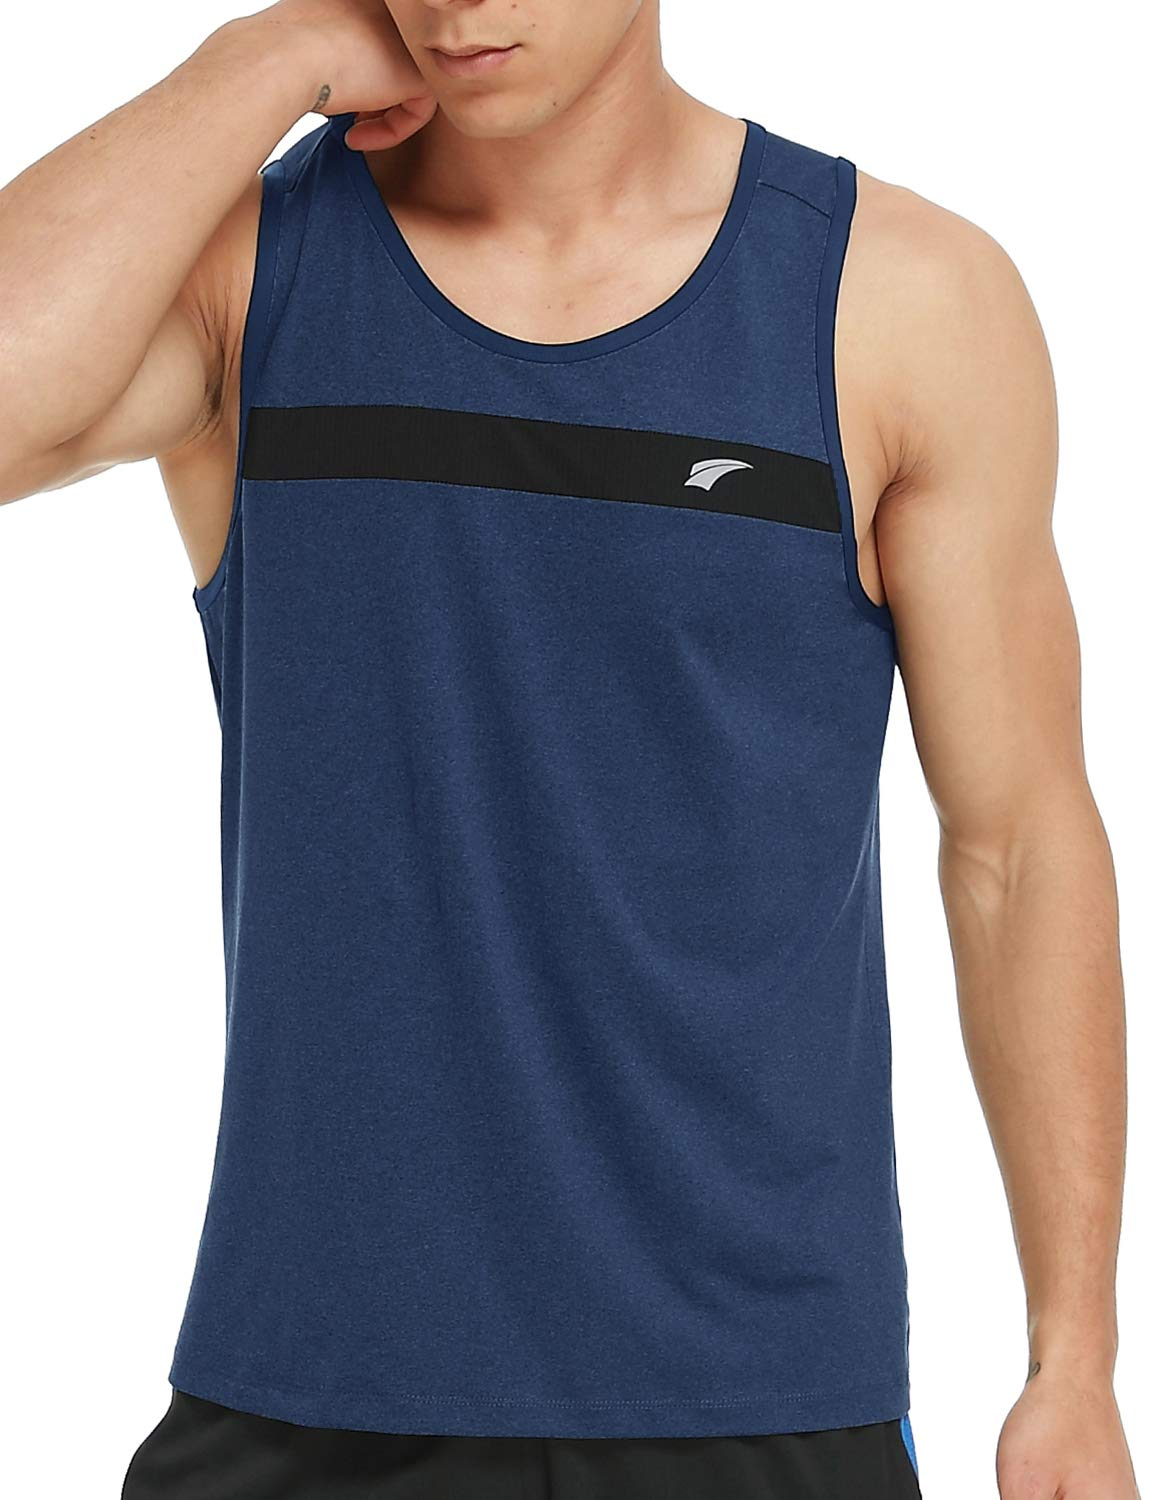 EZRUN Men's Tank Tops Quick Dry Athletic Training Workout Shirts for Gym Fitness Bodybuilding Running Jogging Training